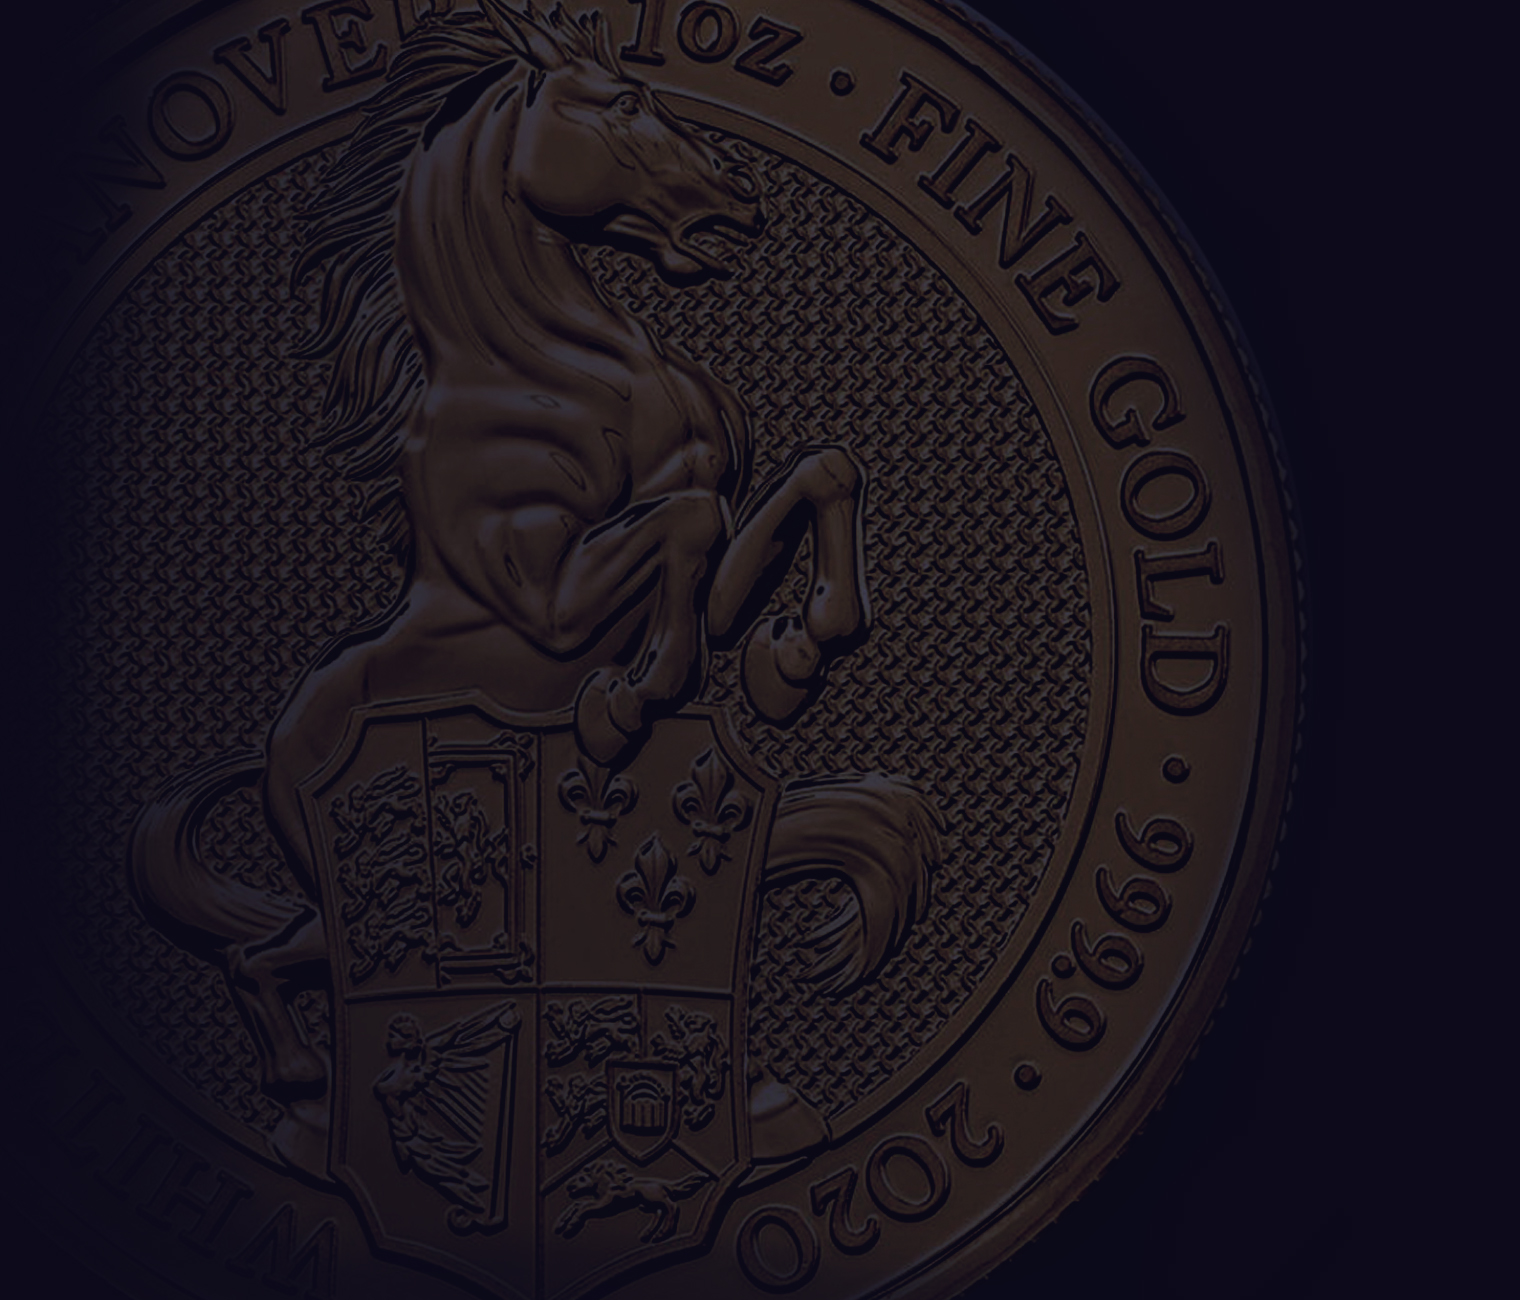 Queen's Beasts White Horse of Hanover Gold Coin